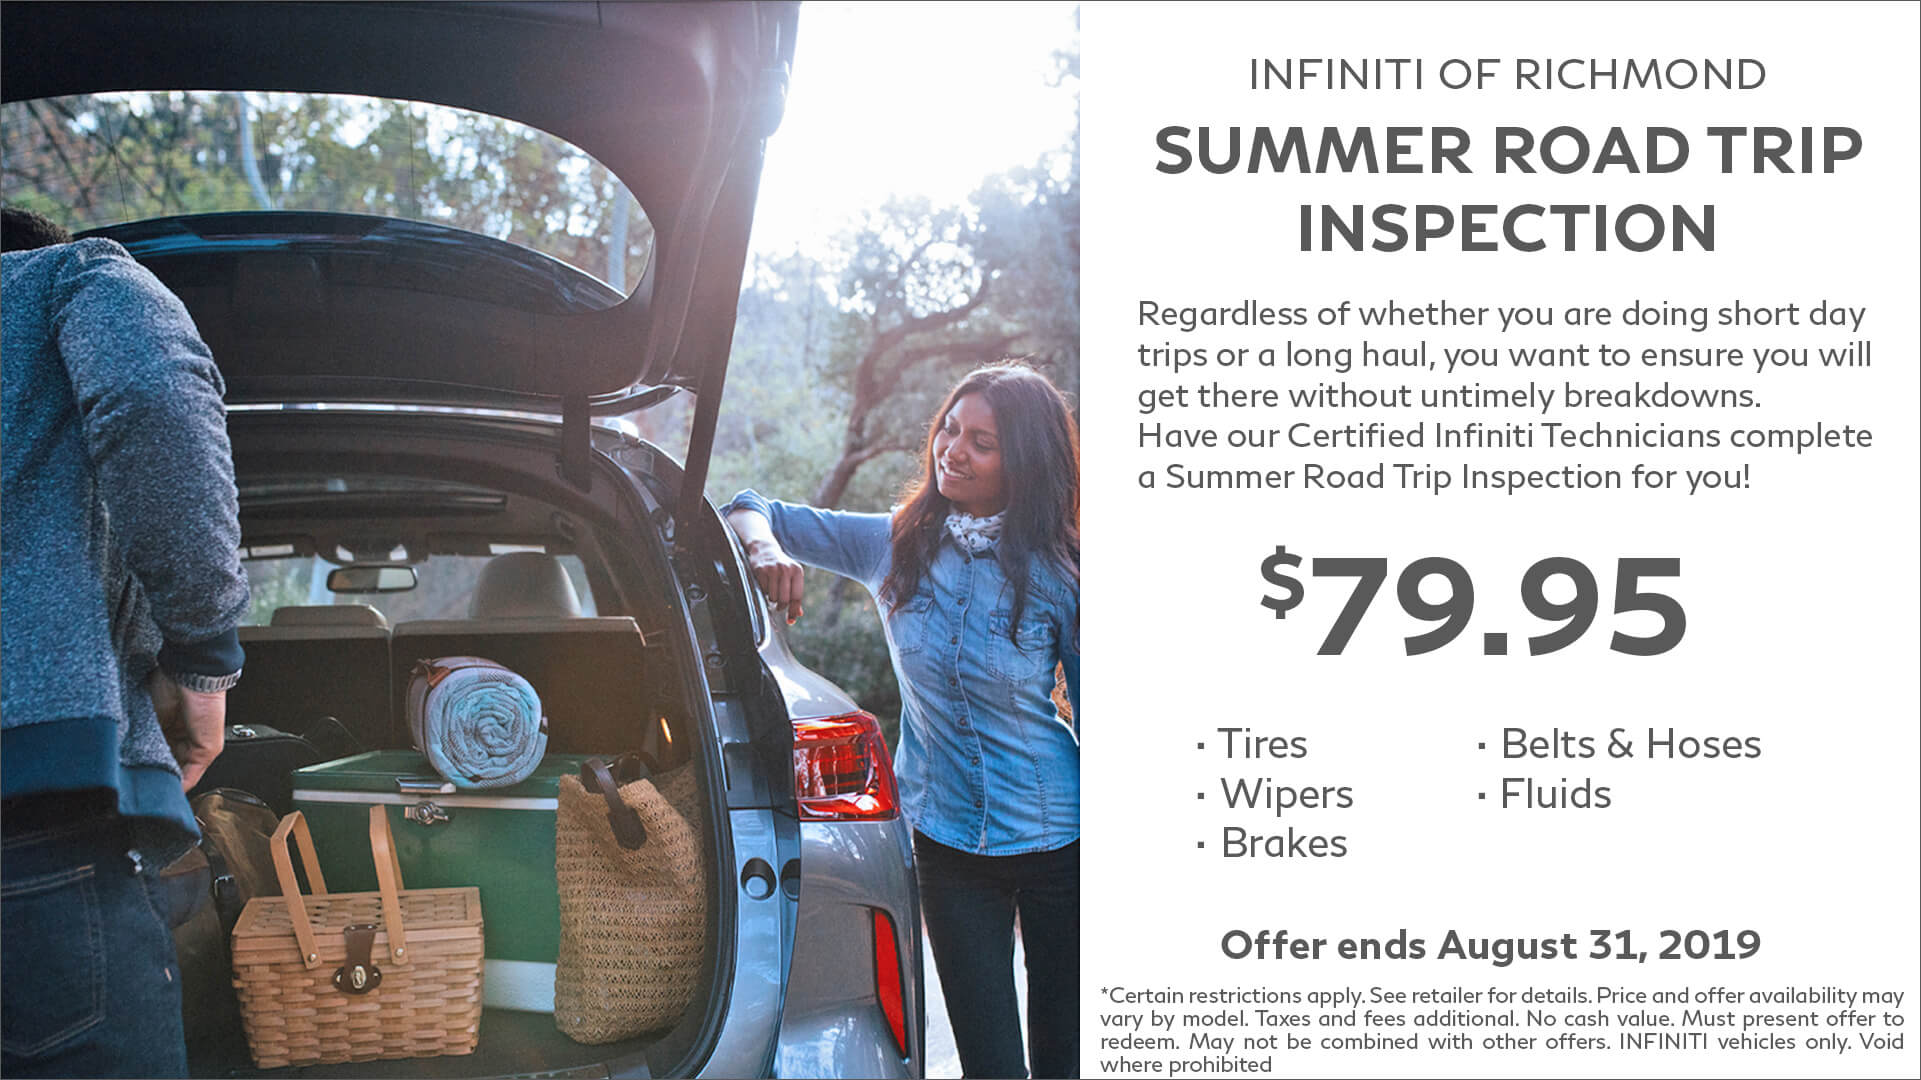 Summer Road Trip Inspection Service